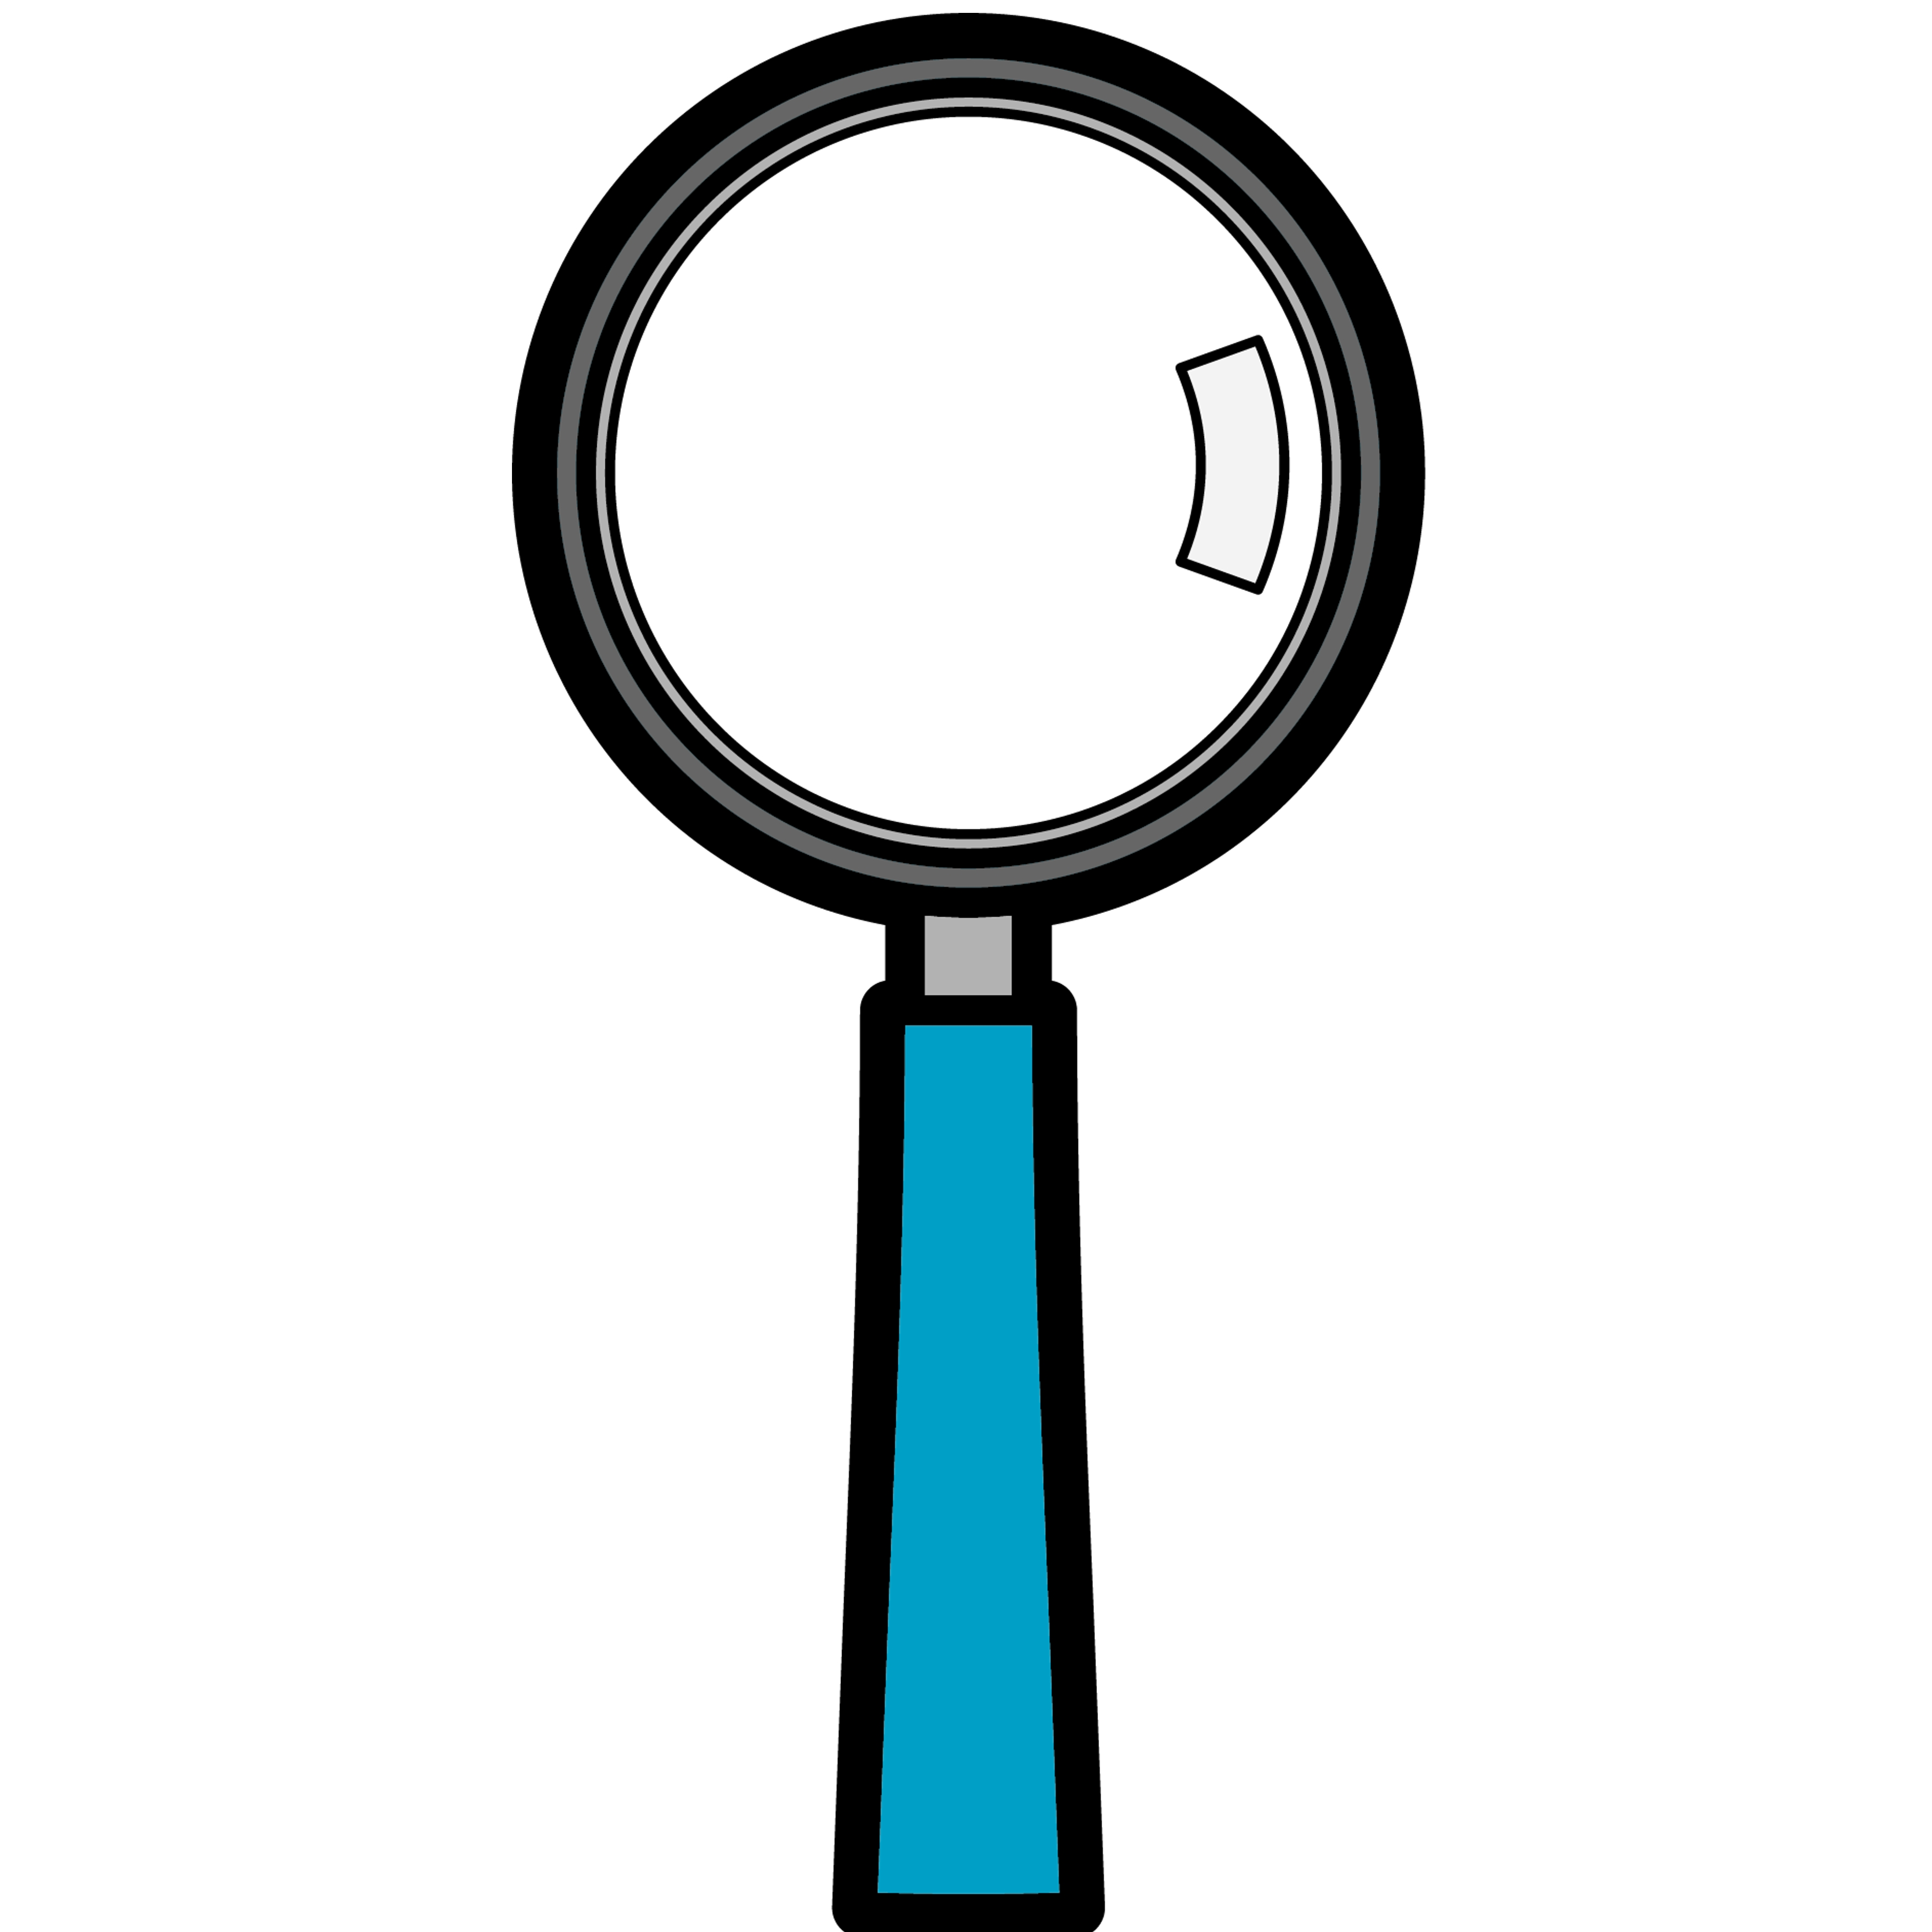 magnifying%20glass%20clipart%20black%20and%20white